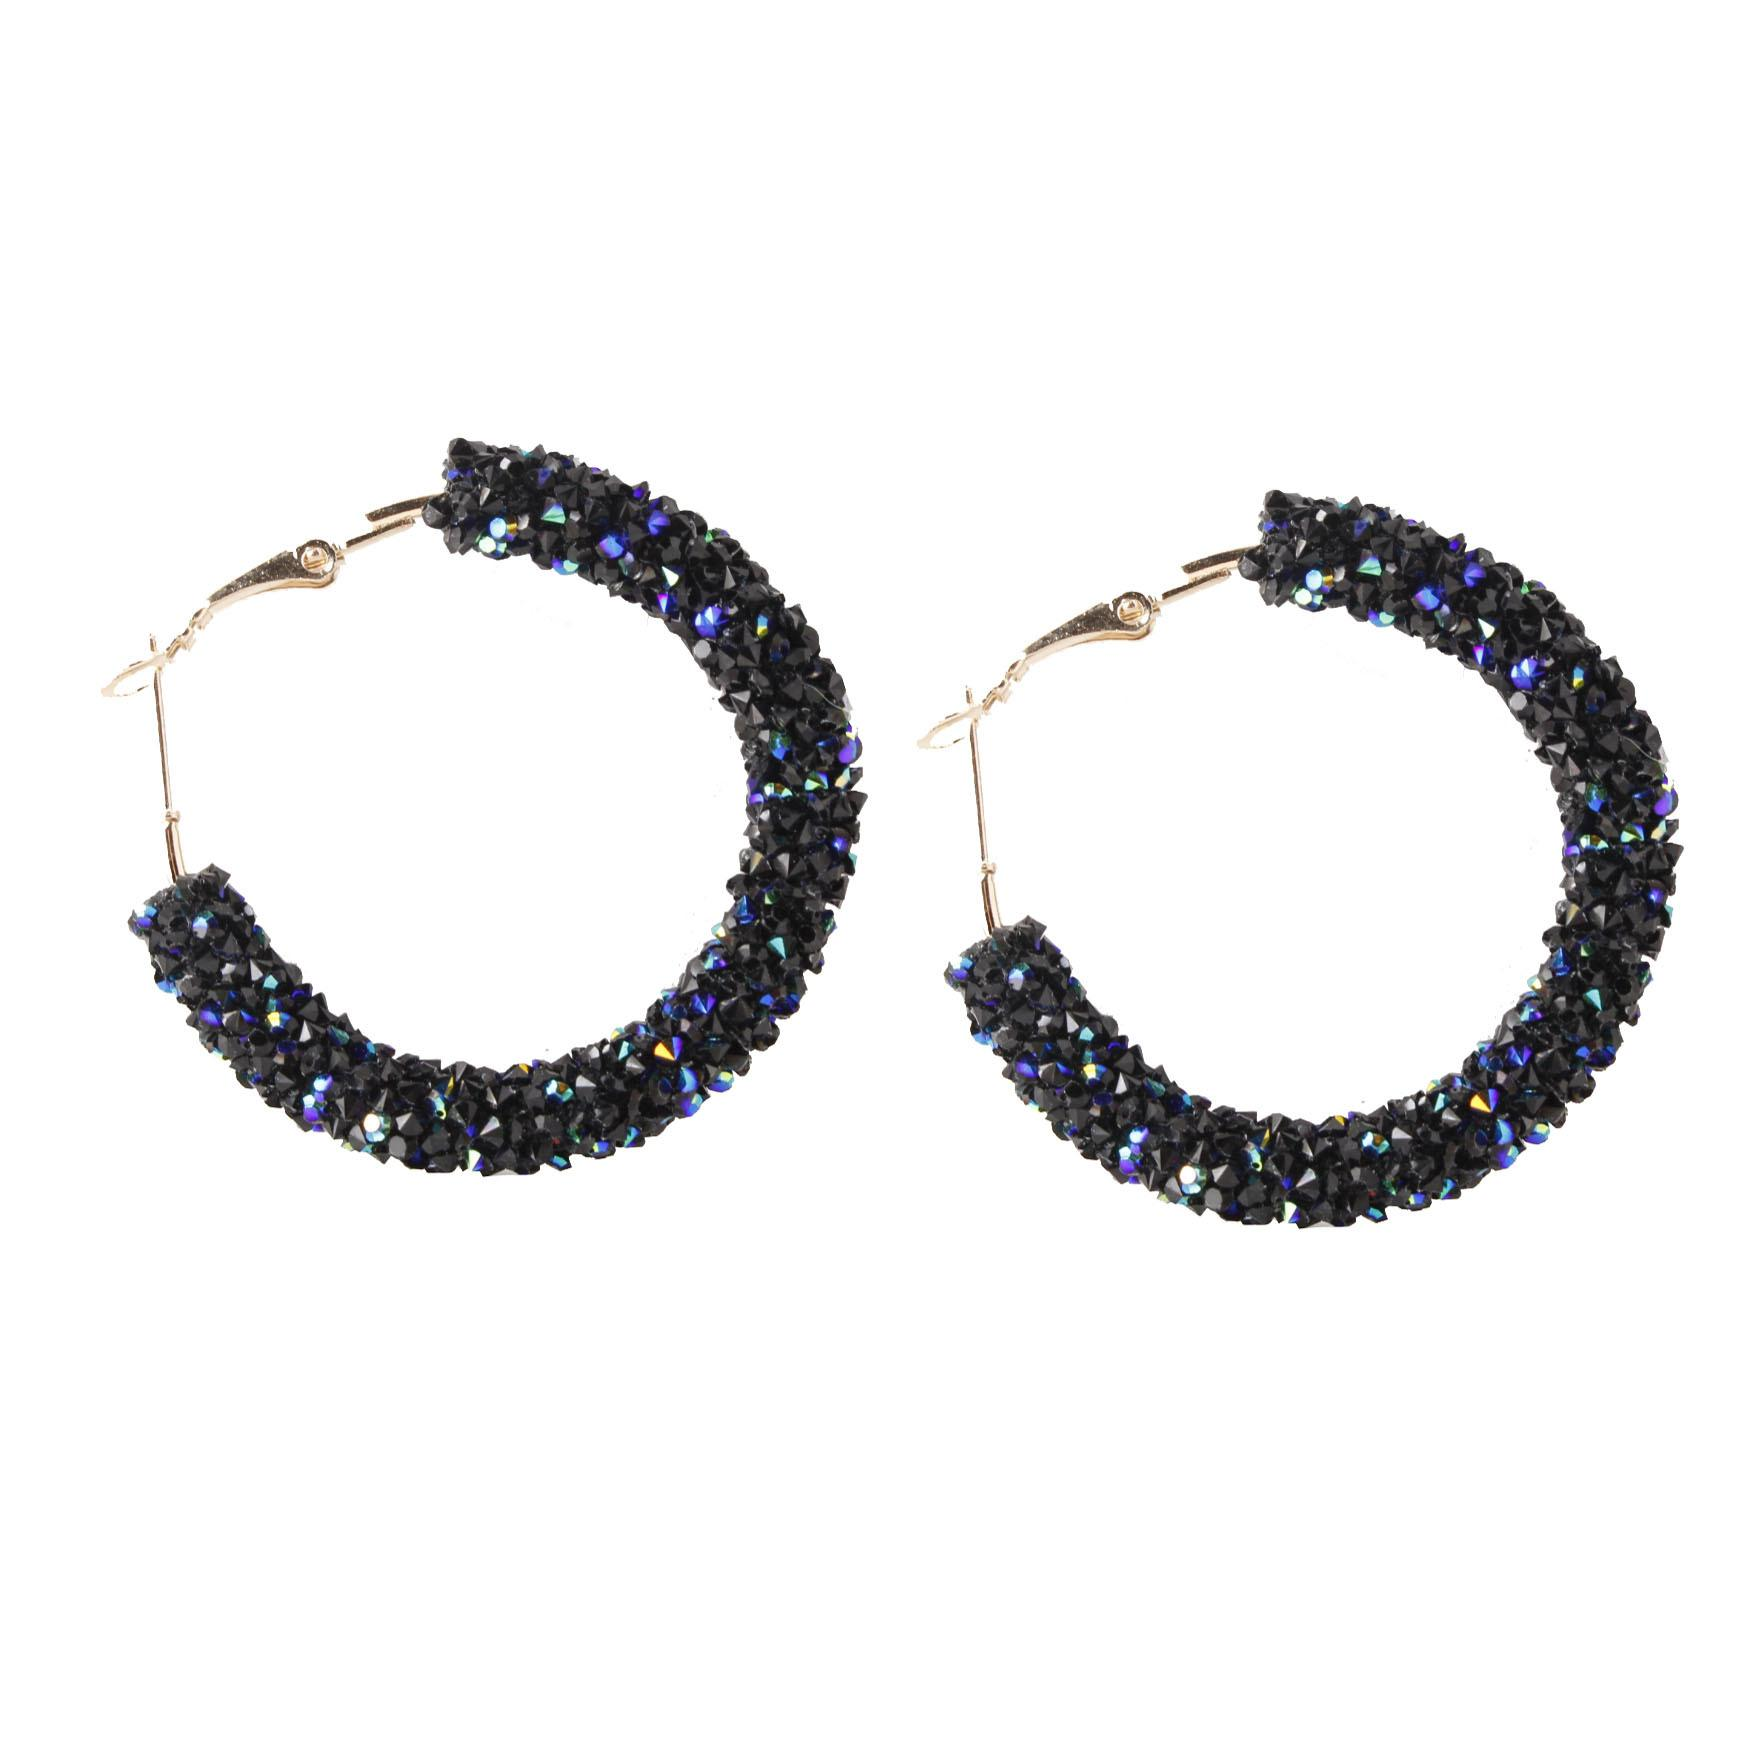 2019 2018 New Designer Crystal Rhinestone Earrings Personality Exaggeration  Geometric Circles Big Earrings Women Fashion Jewelry From Blackfridayes 1af51be8a44d